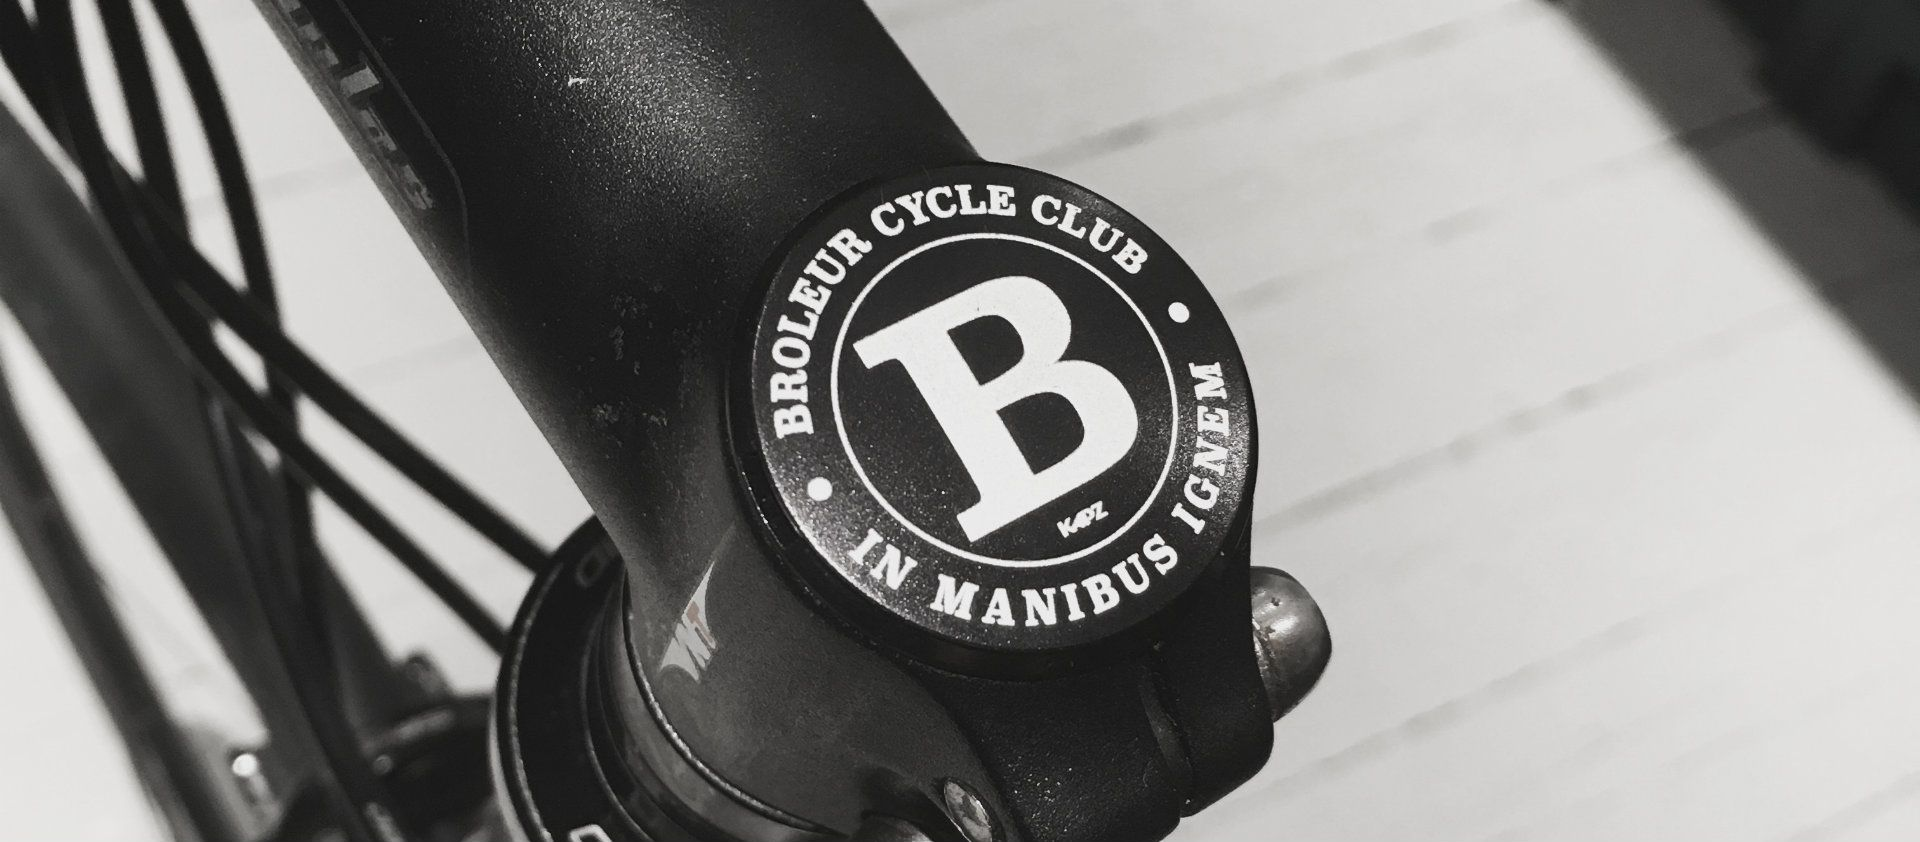 The Broleur motto is worn with pride on our stem caps